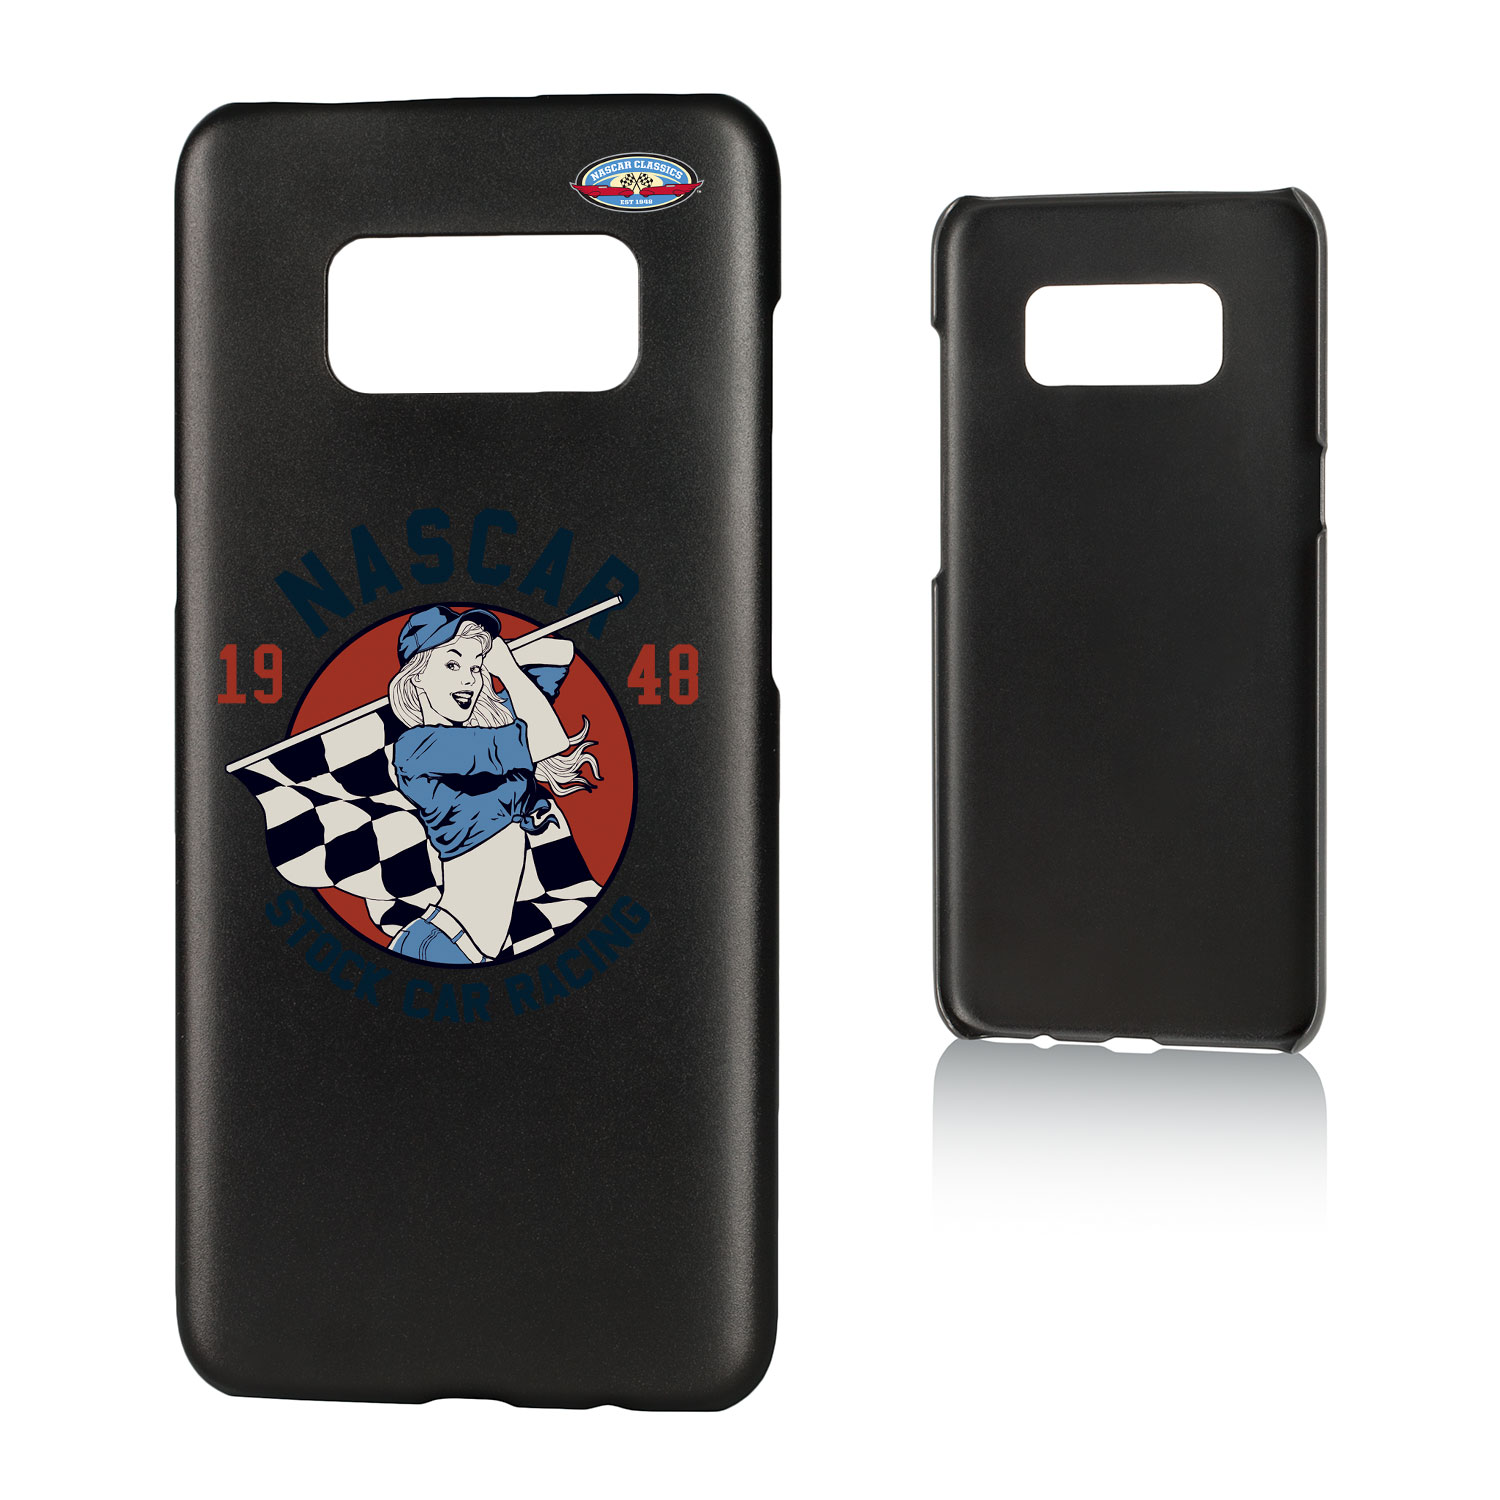 NASCAR 1948 Stock Car Racing Insignia Slim Case for Galaxy S8